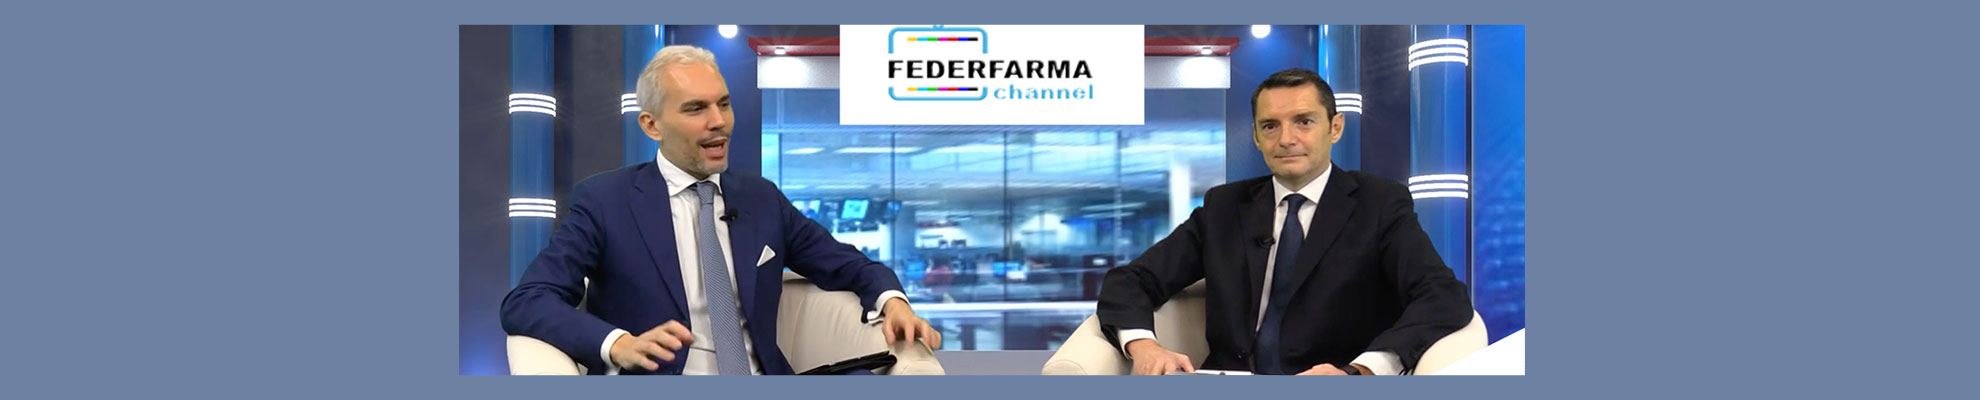 Luca Crippa intervista Federfarma Channel